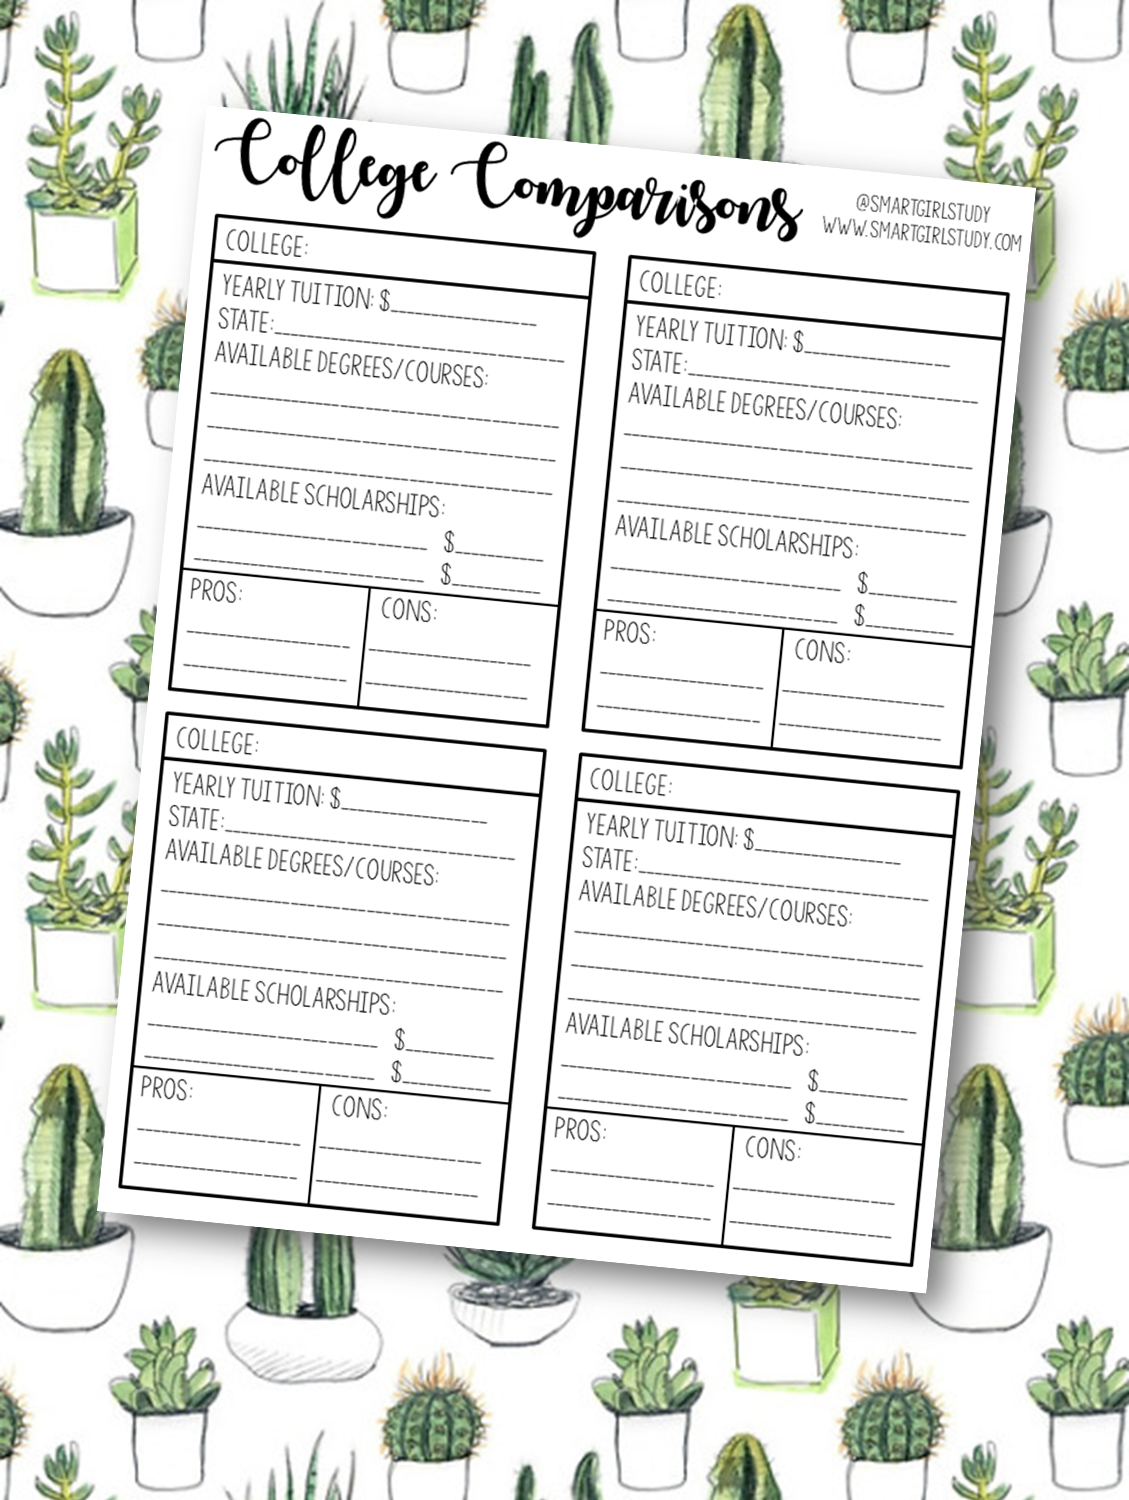 Download Free Student Printables Amp Templates Like This